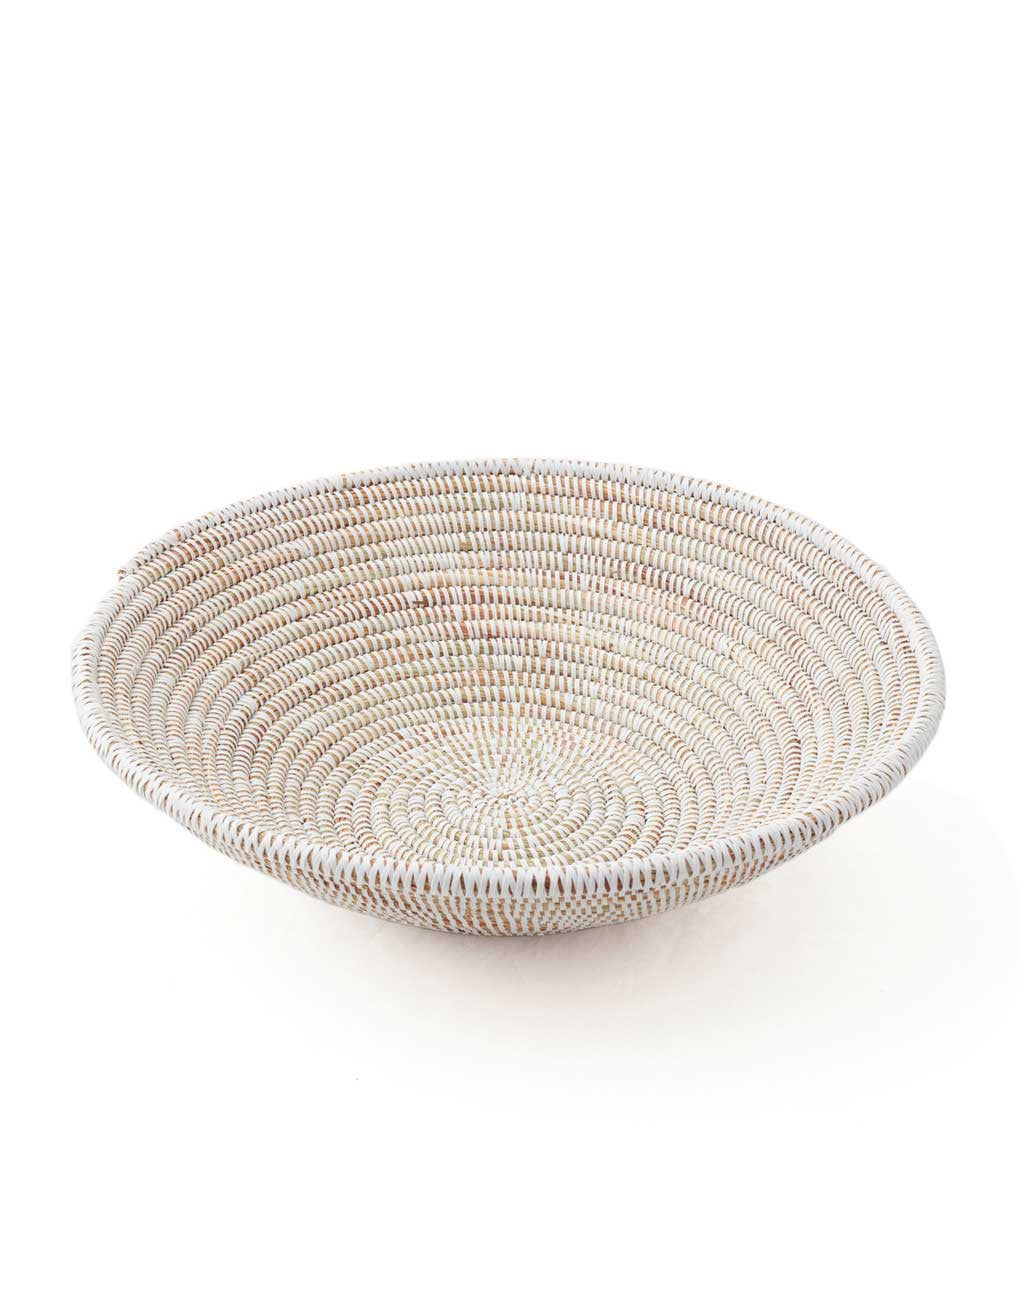 Handwoven Grass Recycled Plastic Fruit Bowl Fair Trade White